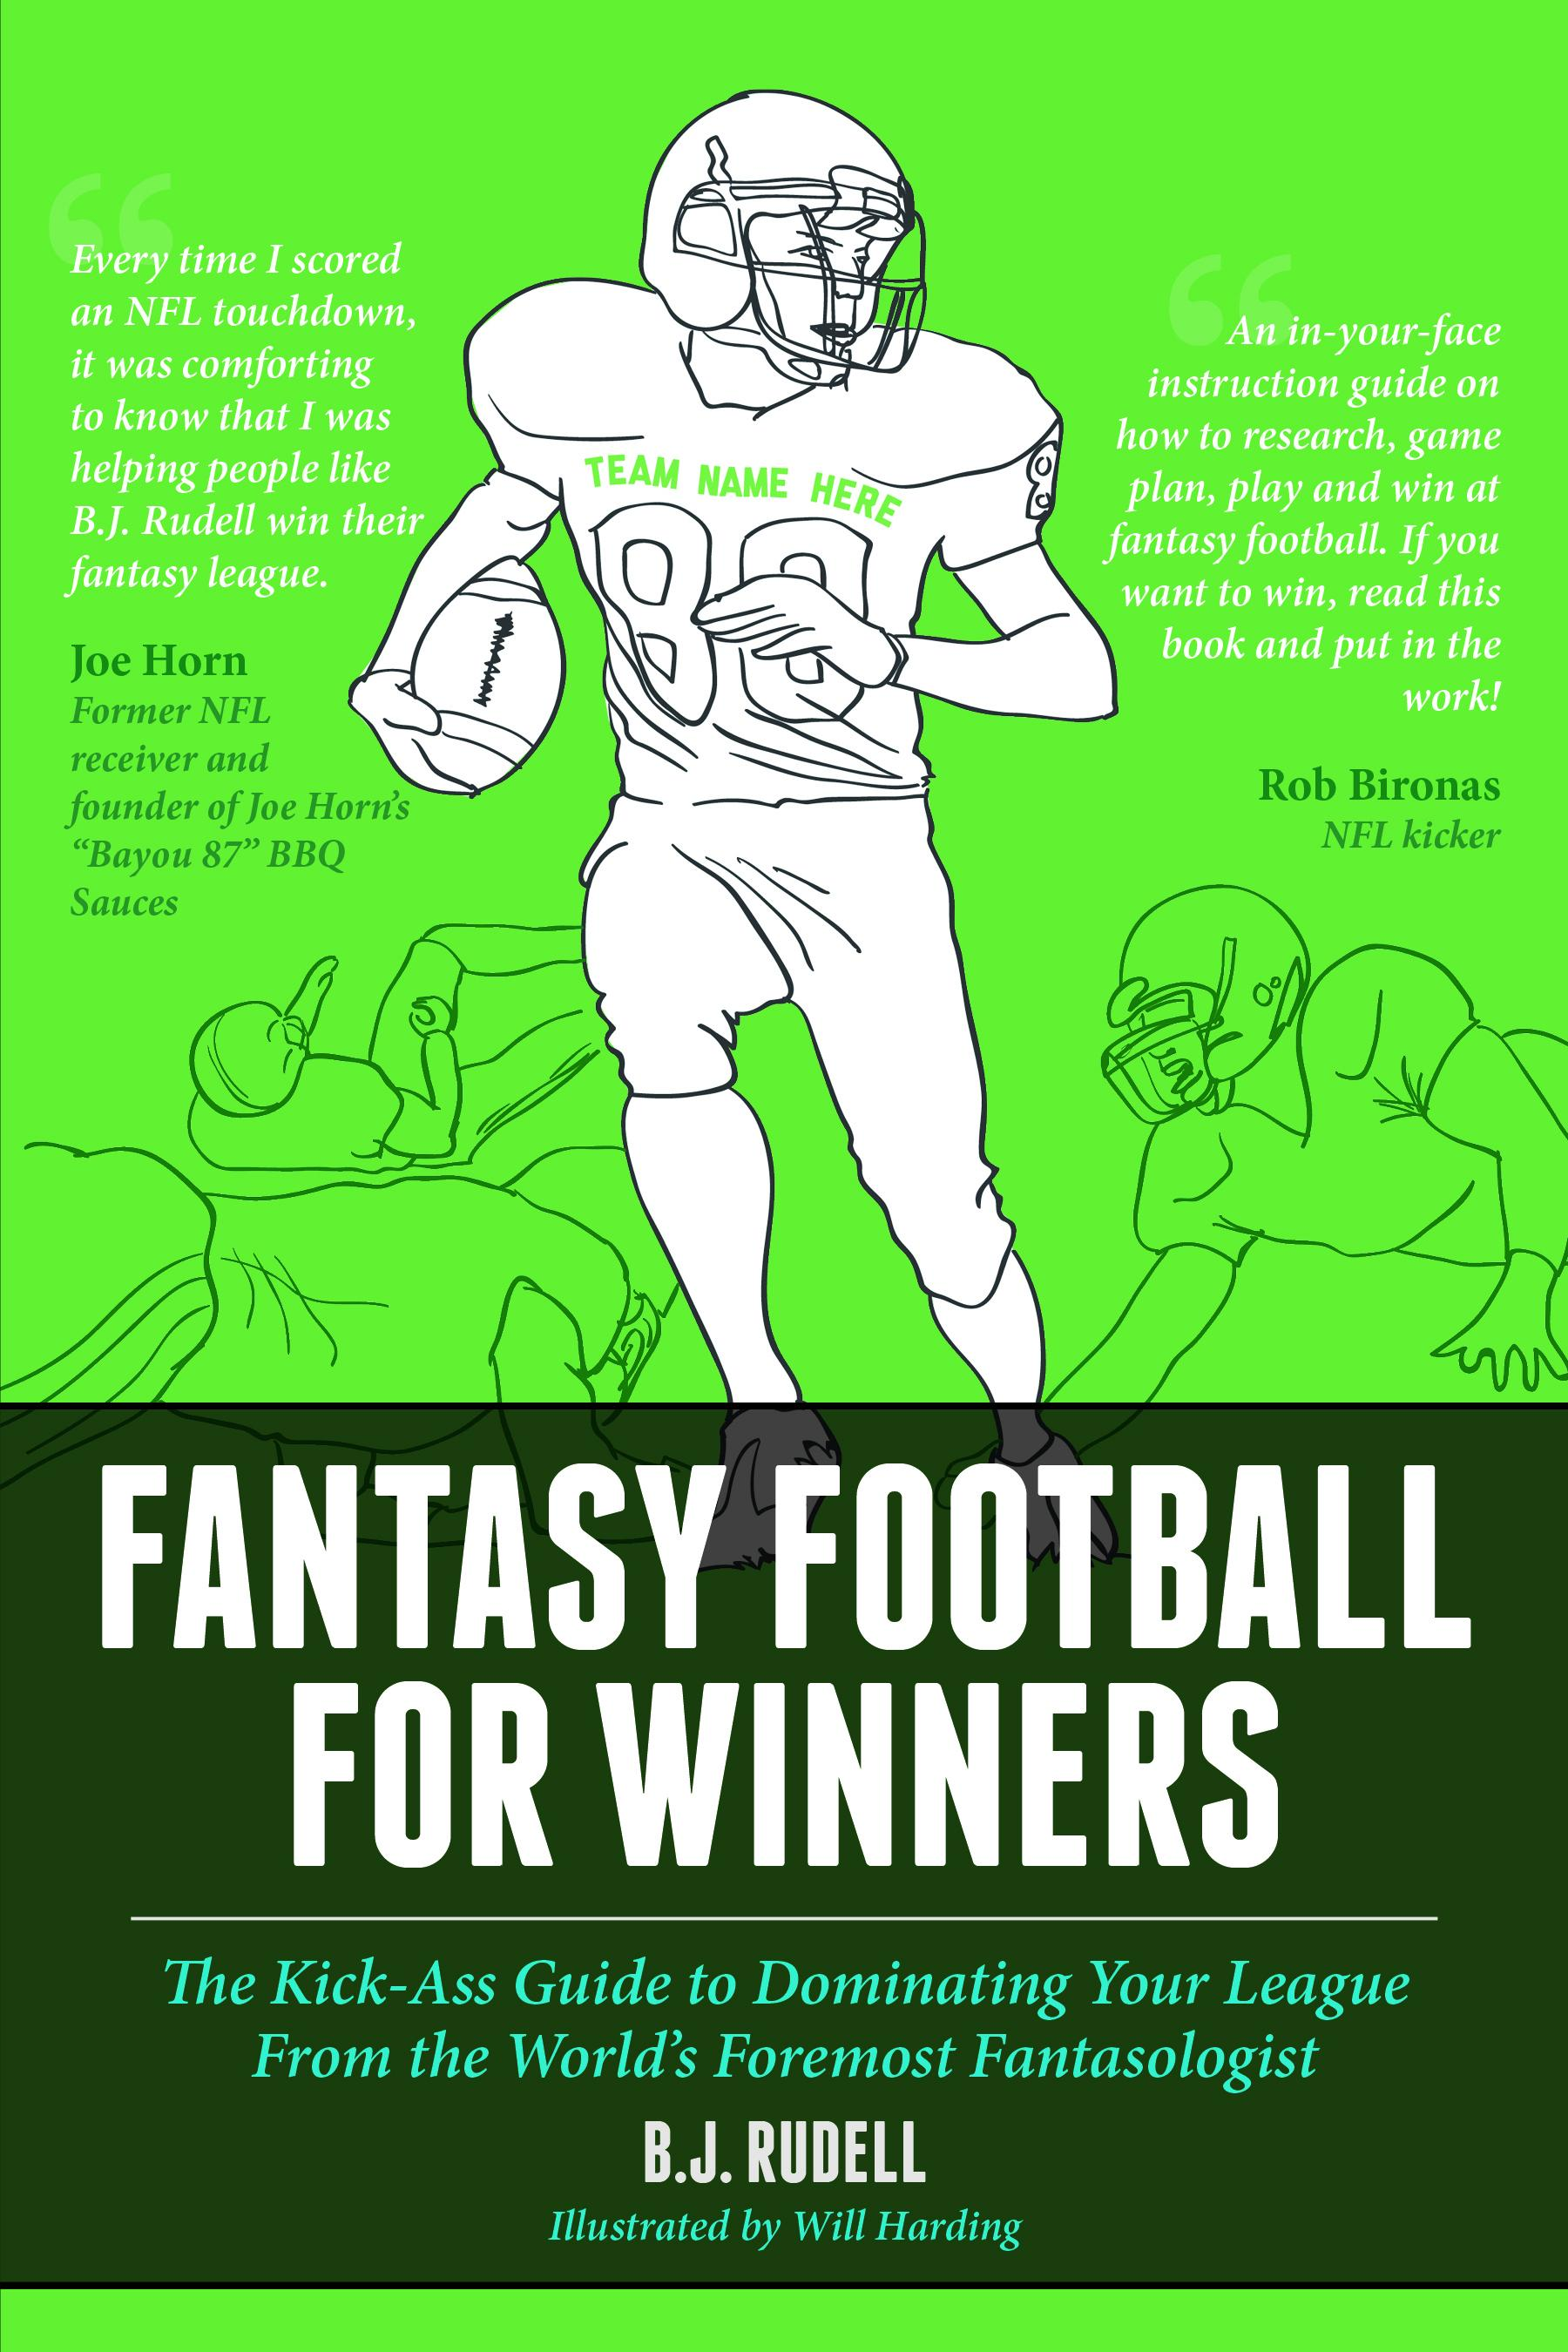 Fantasy Football for Winners: The Kick-Ass Guide to Dominating Your League From the World's Foremost Fantasologist EB2370004395784